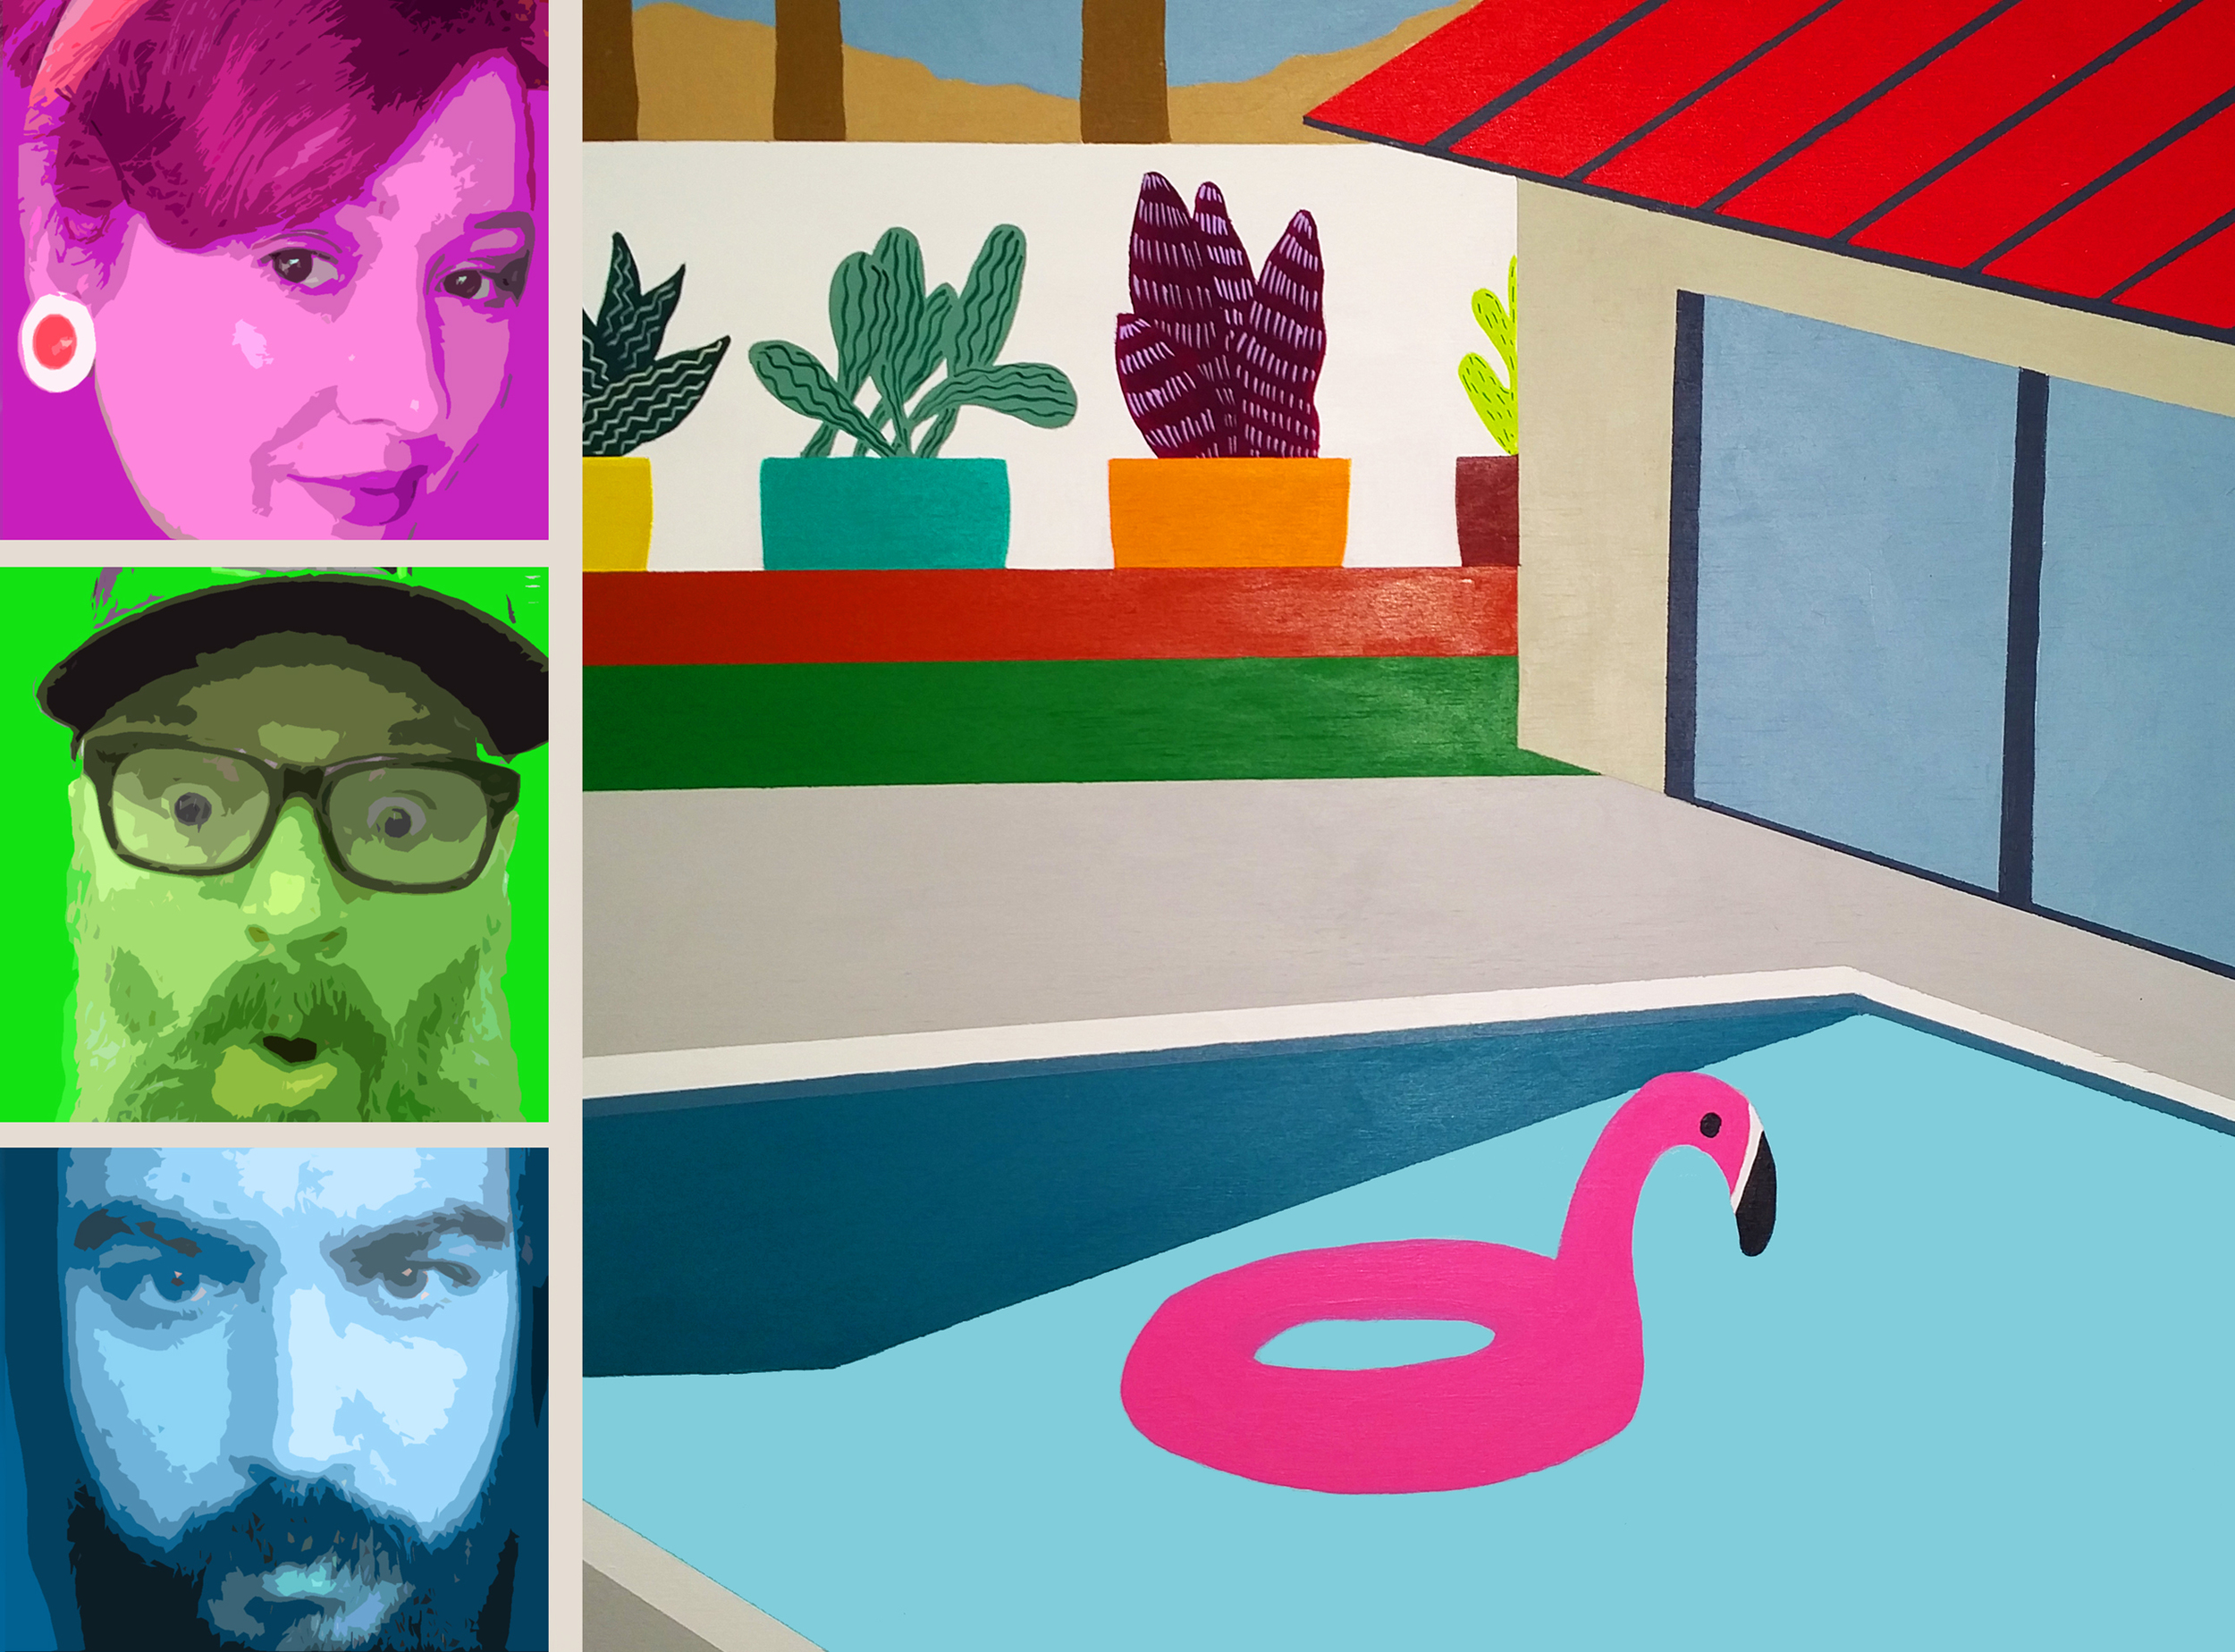 We stepped inside a pool paradise created by our pal Neal Breton and it was GROOVY!